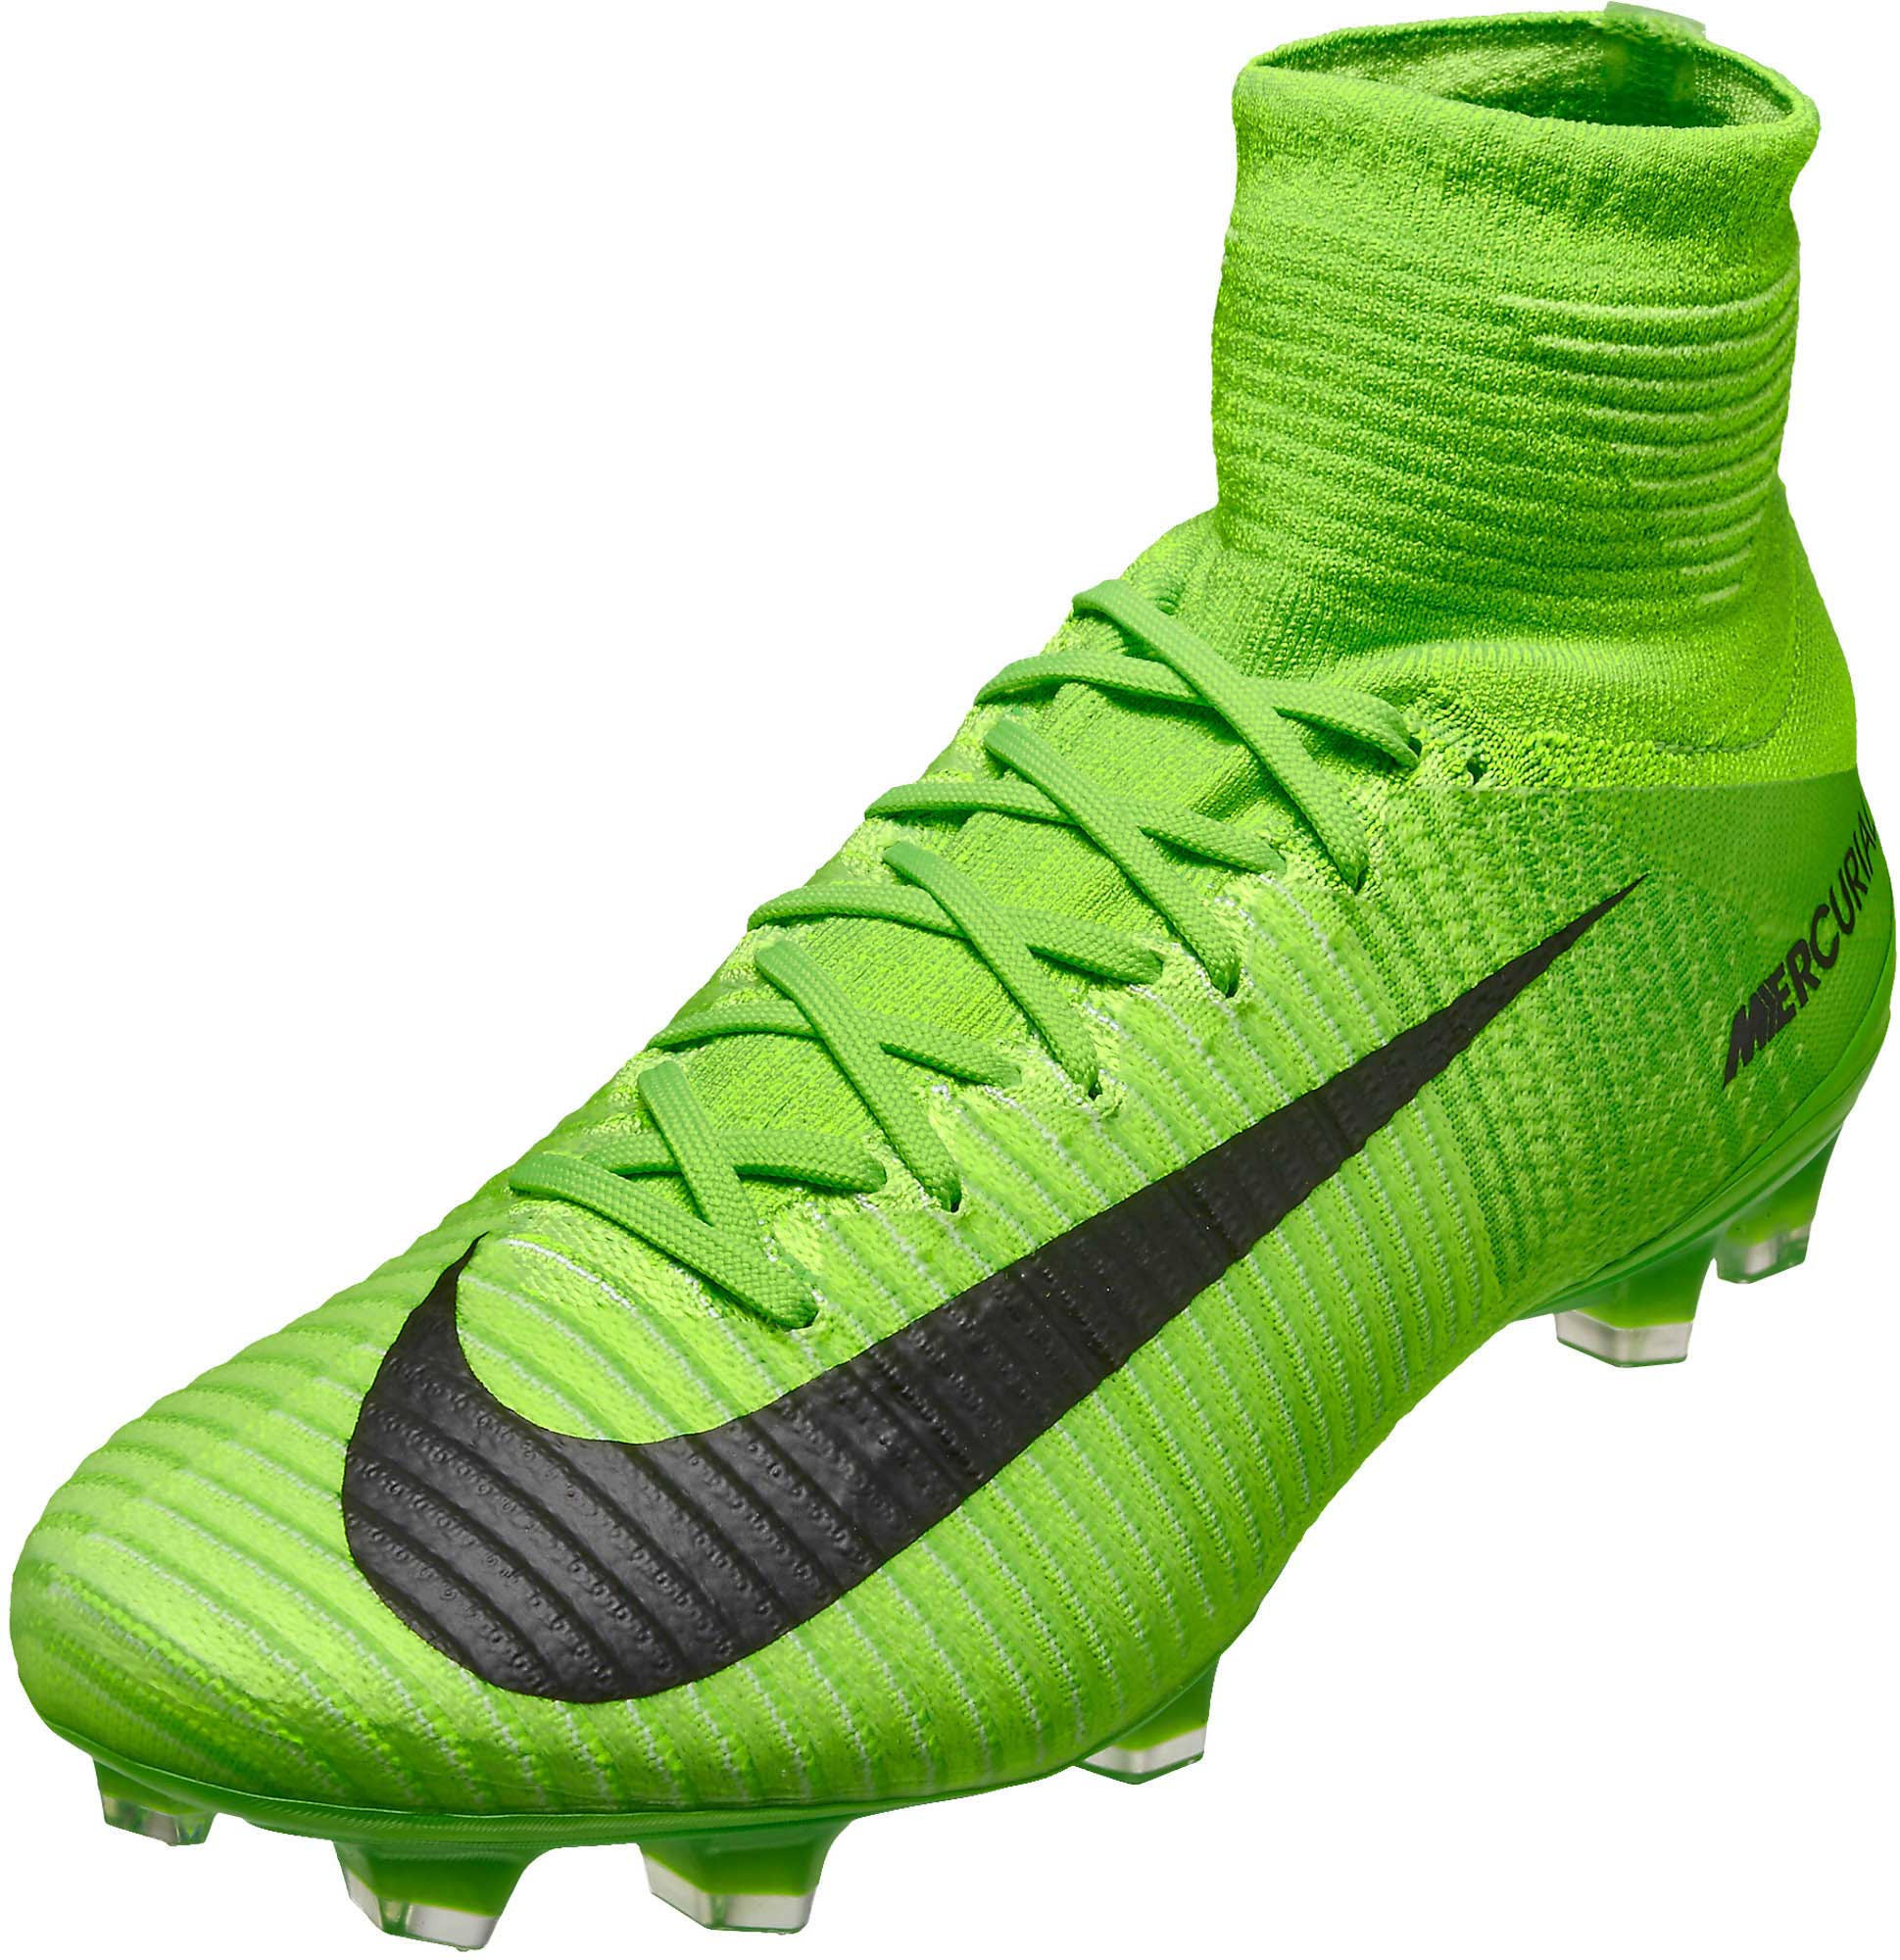 Nike Mercurial Superfly V FG – Electric Green Ghost Green 7ddcb1fb247b